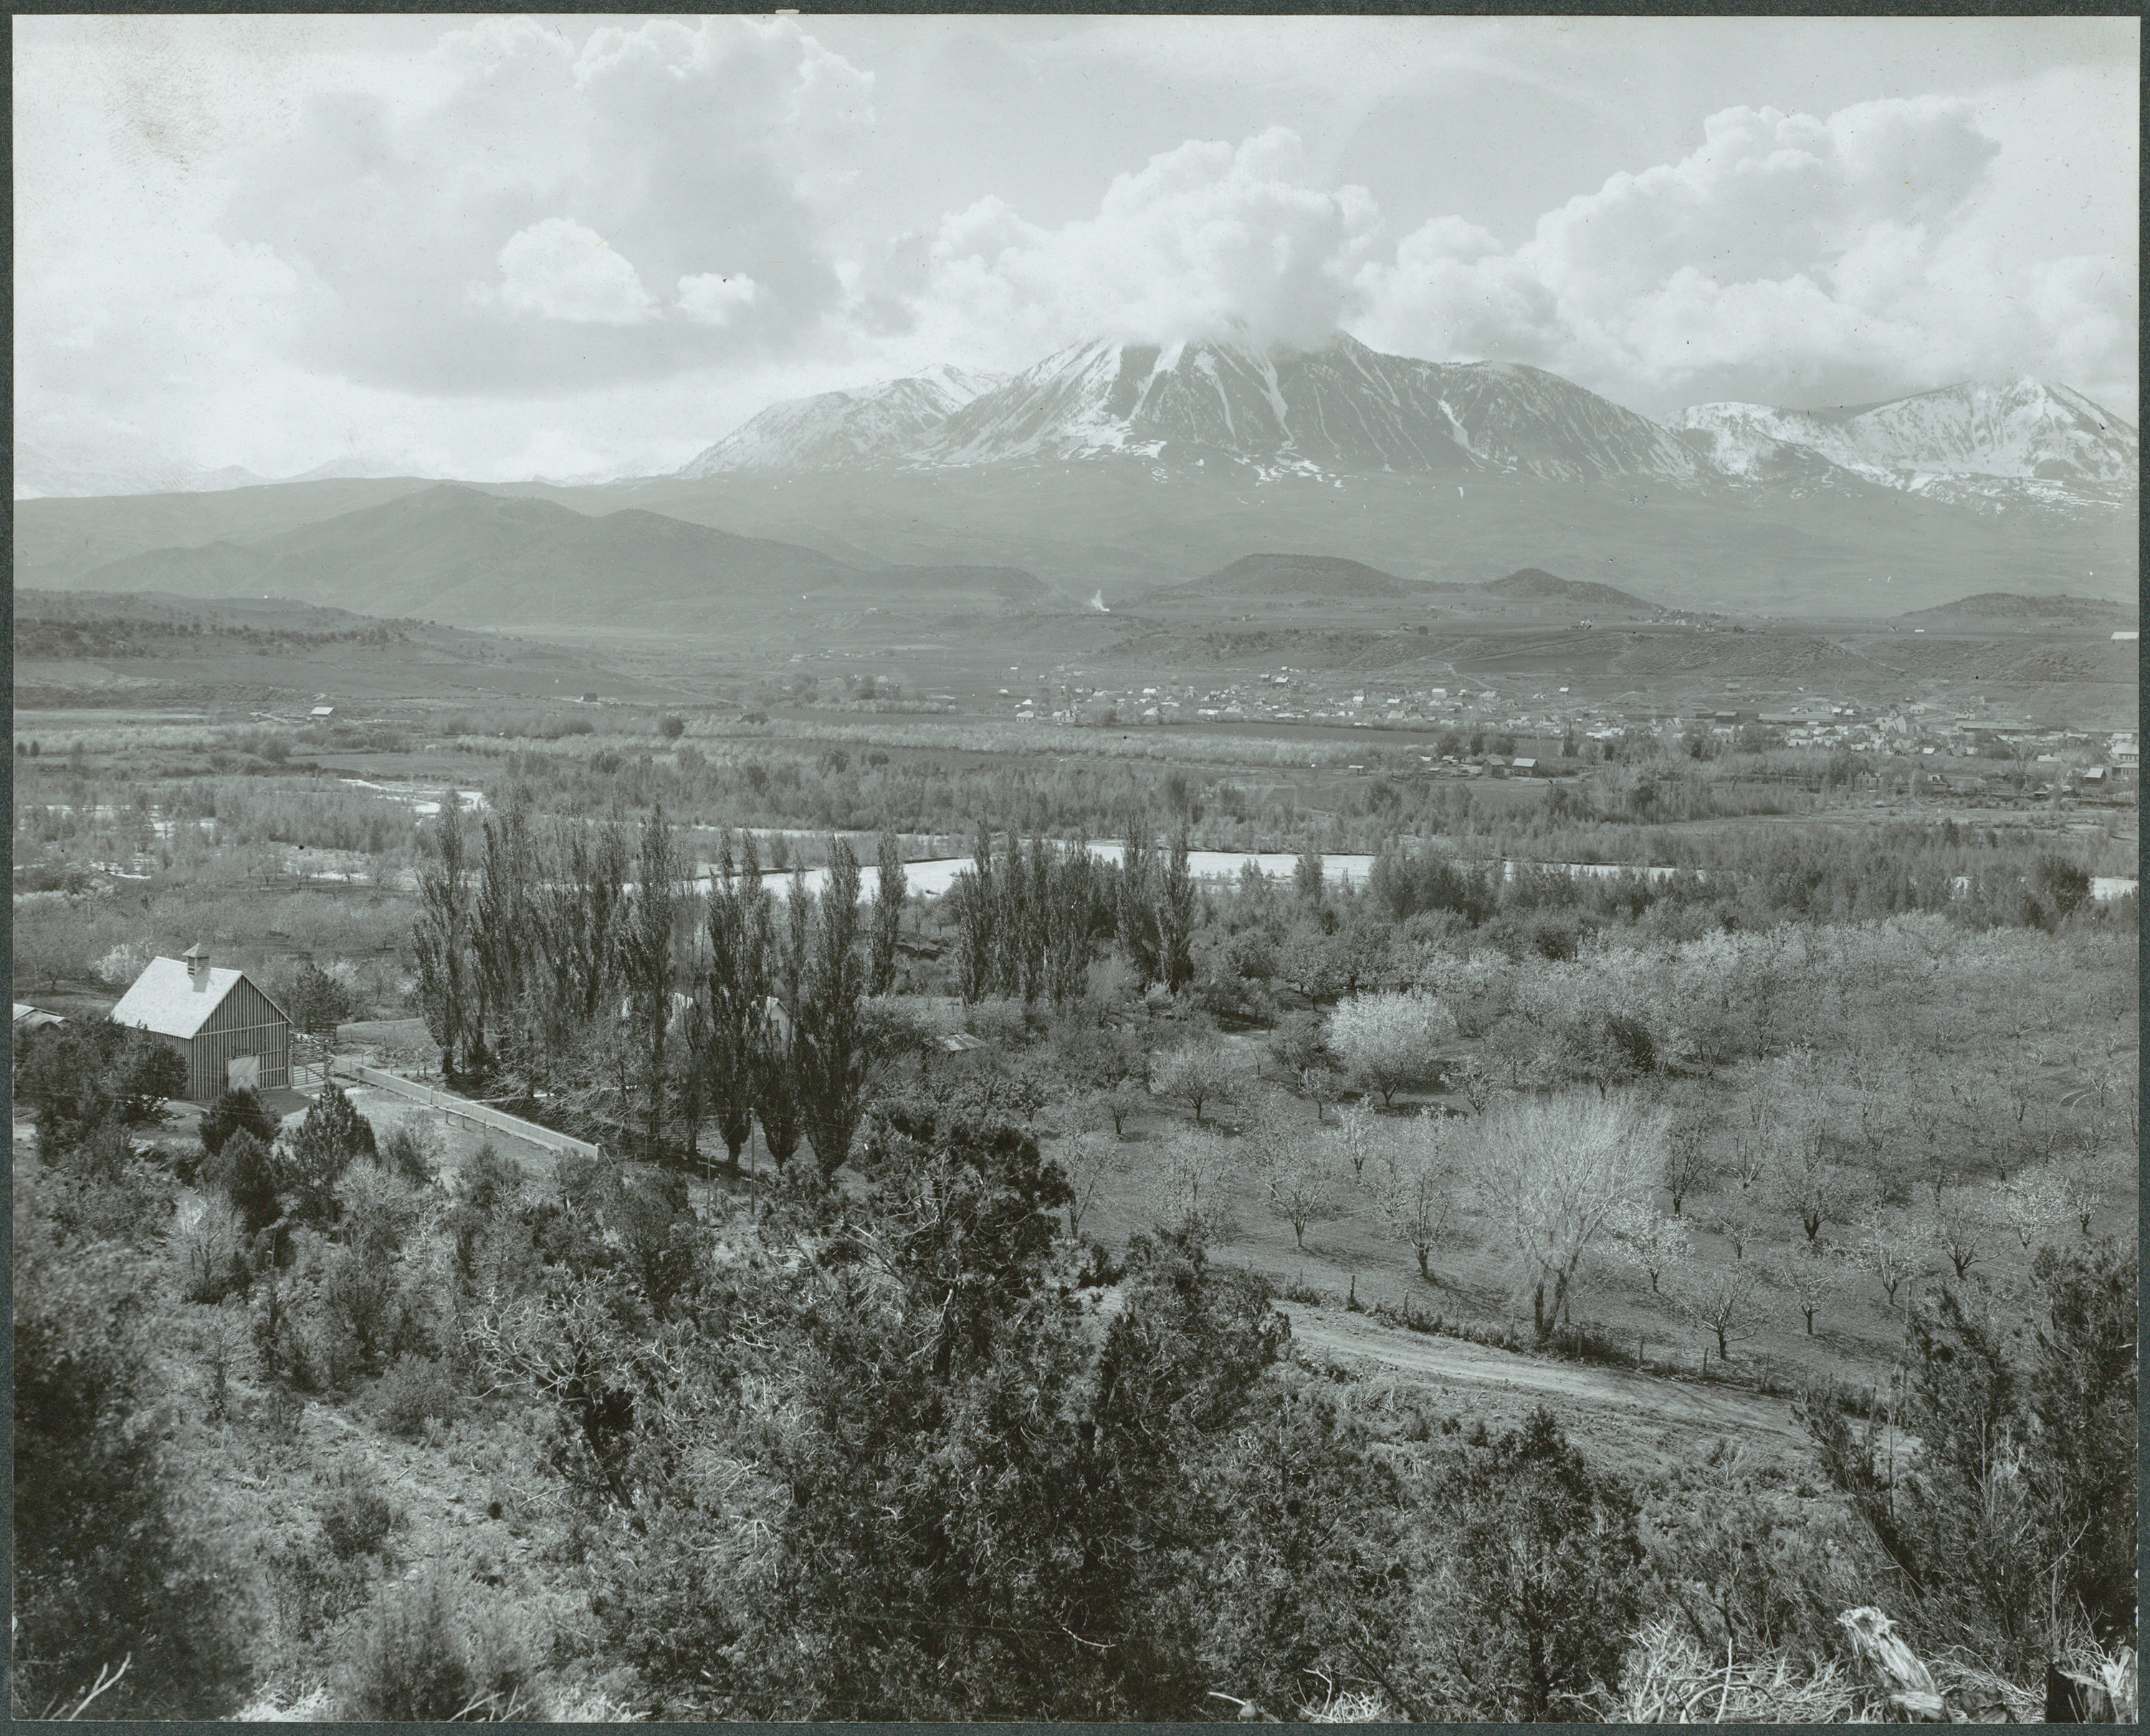 photo of orchards near mountains